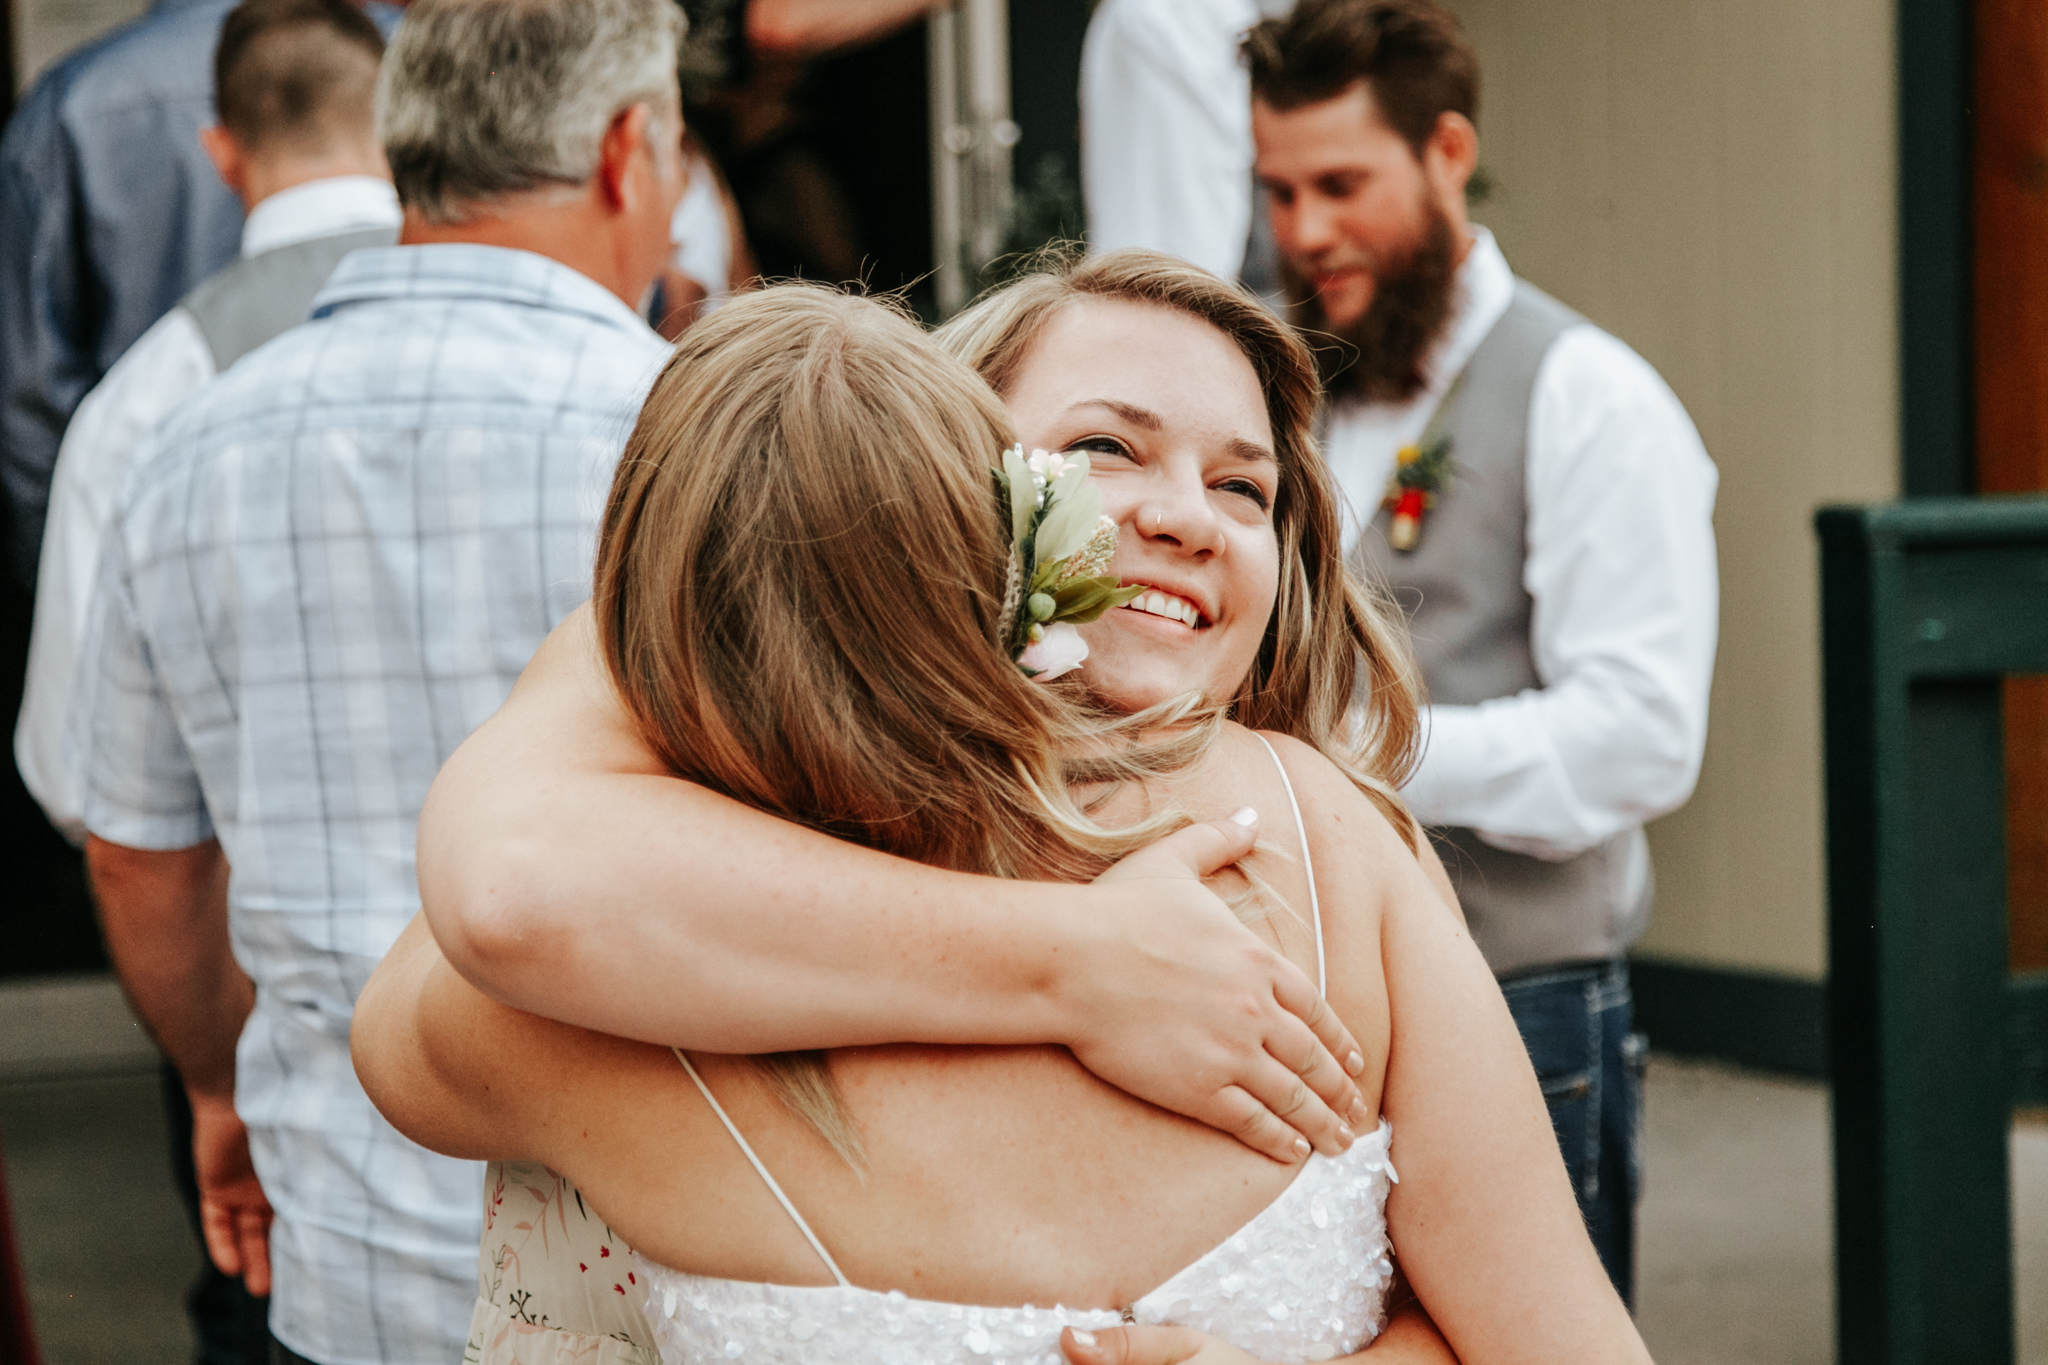 castle-mountain-wedding-photographer-love-and-be-loved-photography-lethbridge-pincher-creek-crowsnest-pass-yannick-rylee-photo-image-picture-155187.jpg